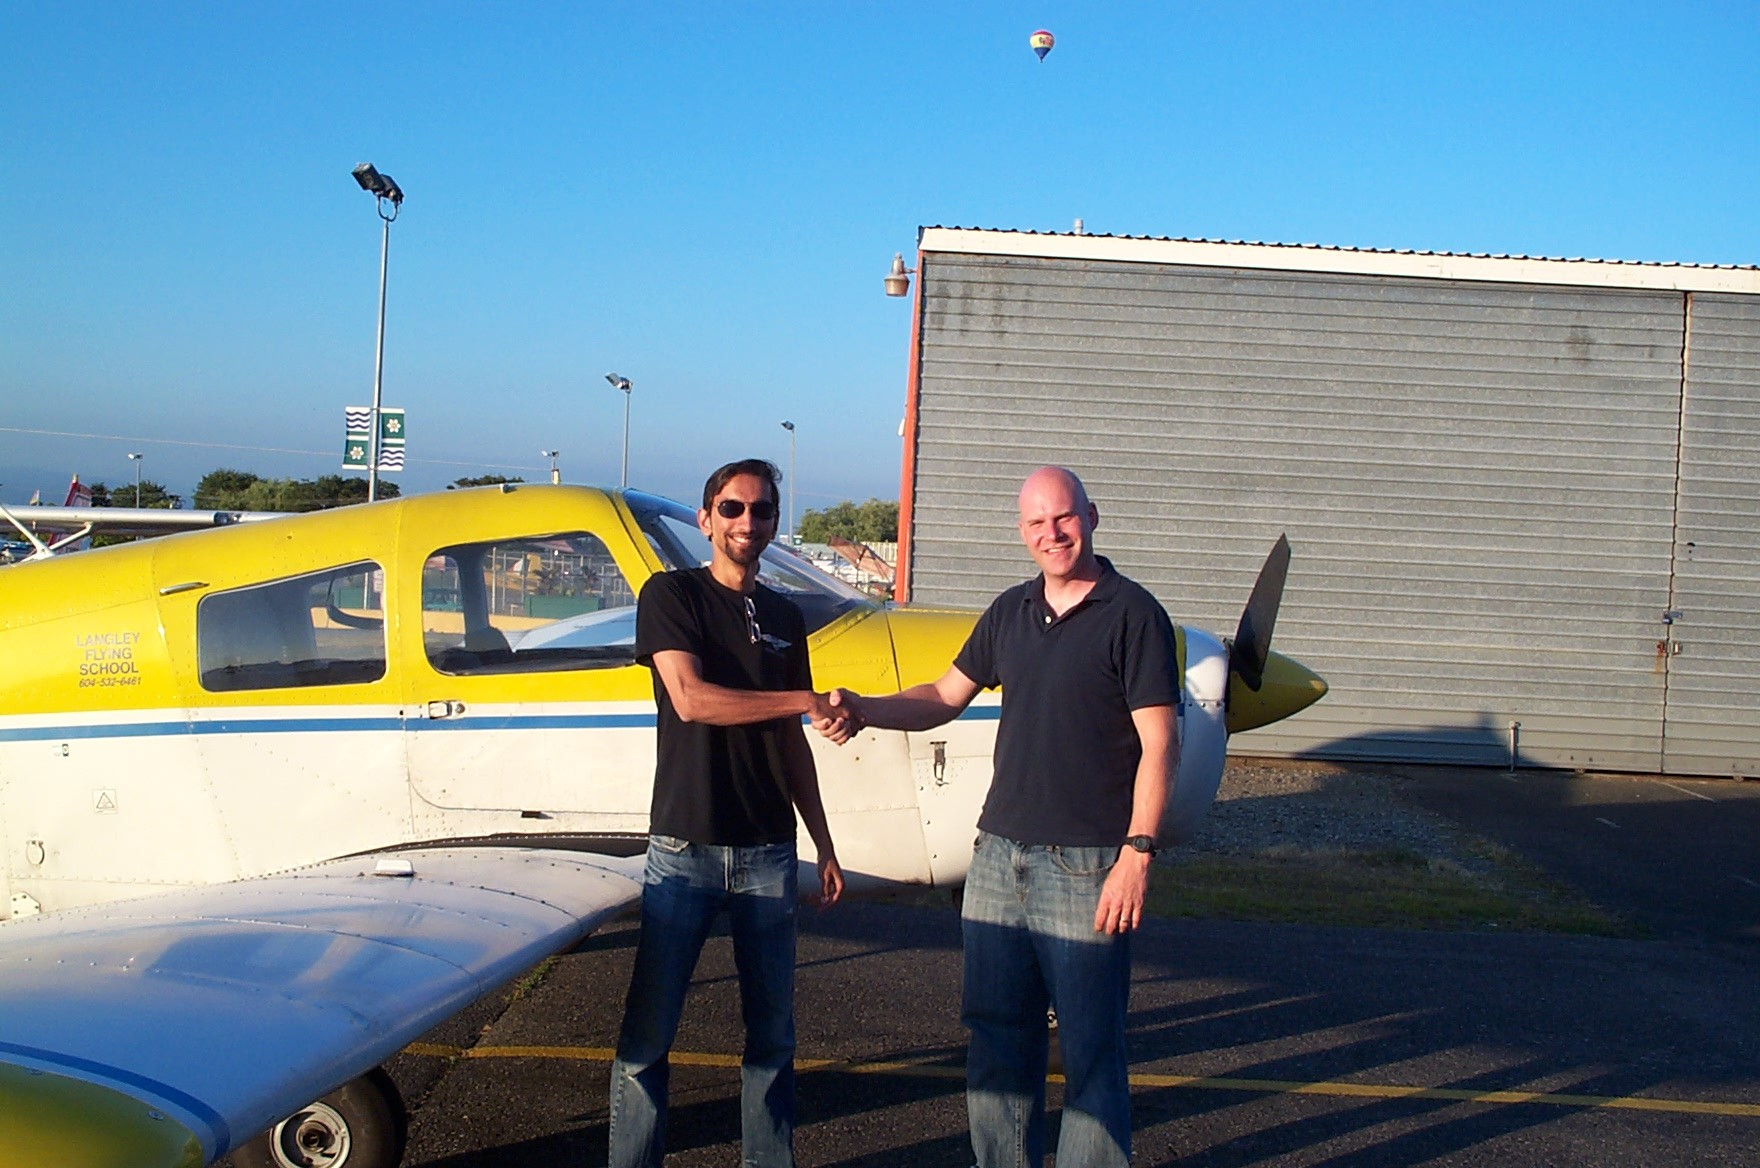 Carl Tingstad receives contrats from his Flight Instructor, Mayank Mittal.  Langley Flying School.